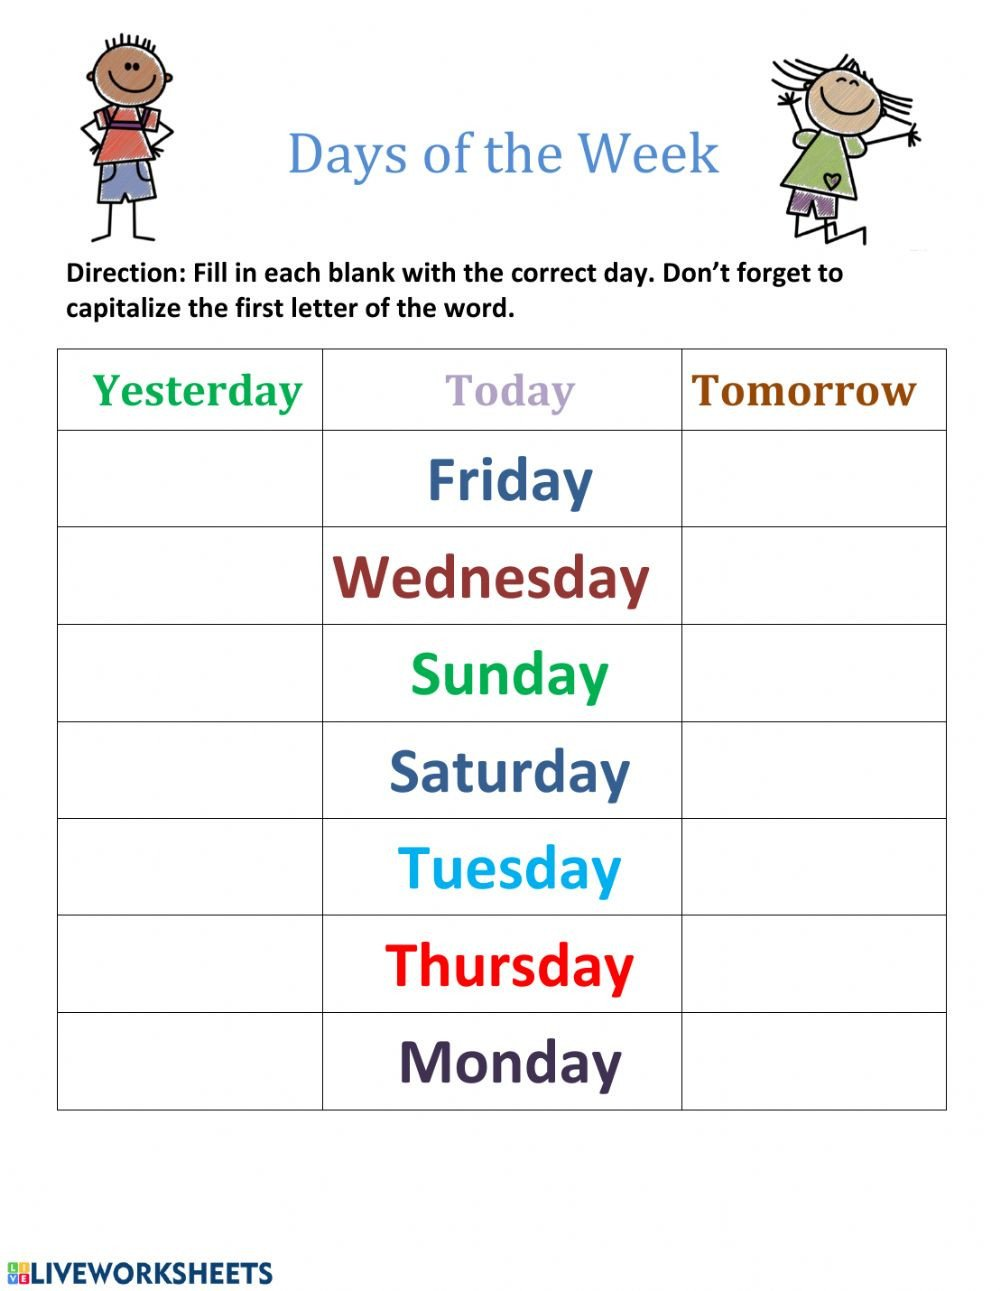 Inflected Endings Worksheets Days Of the Week Interactive Worksheet